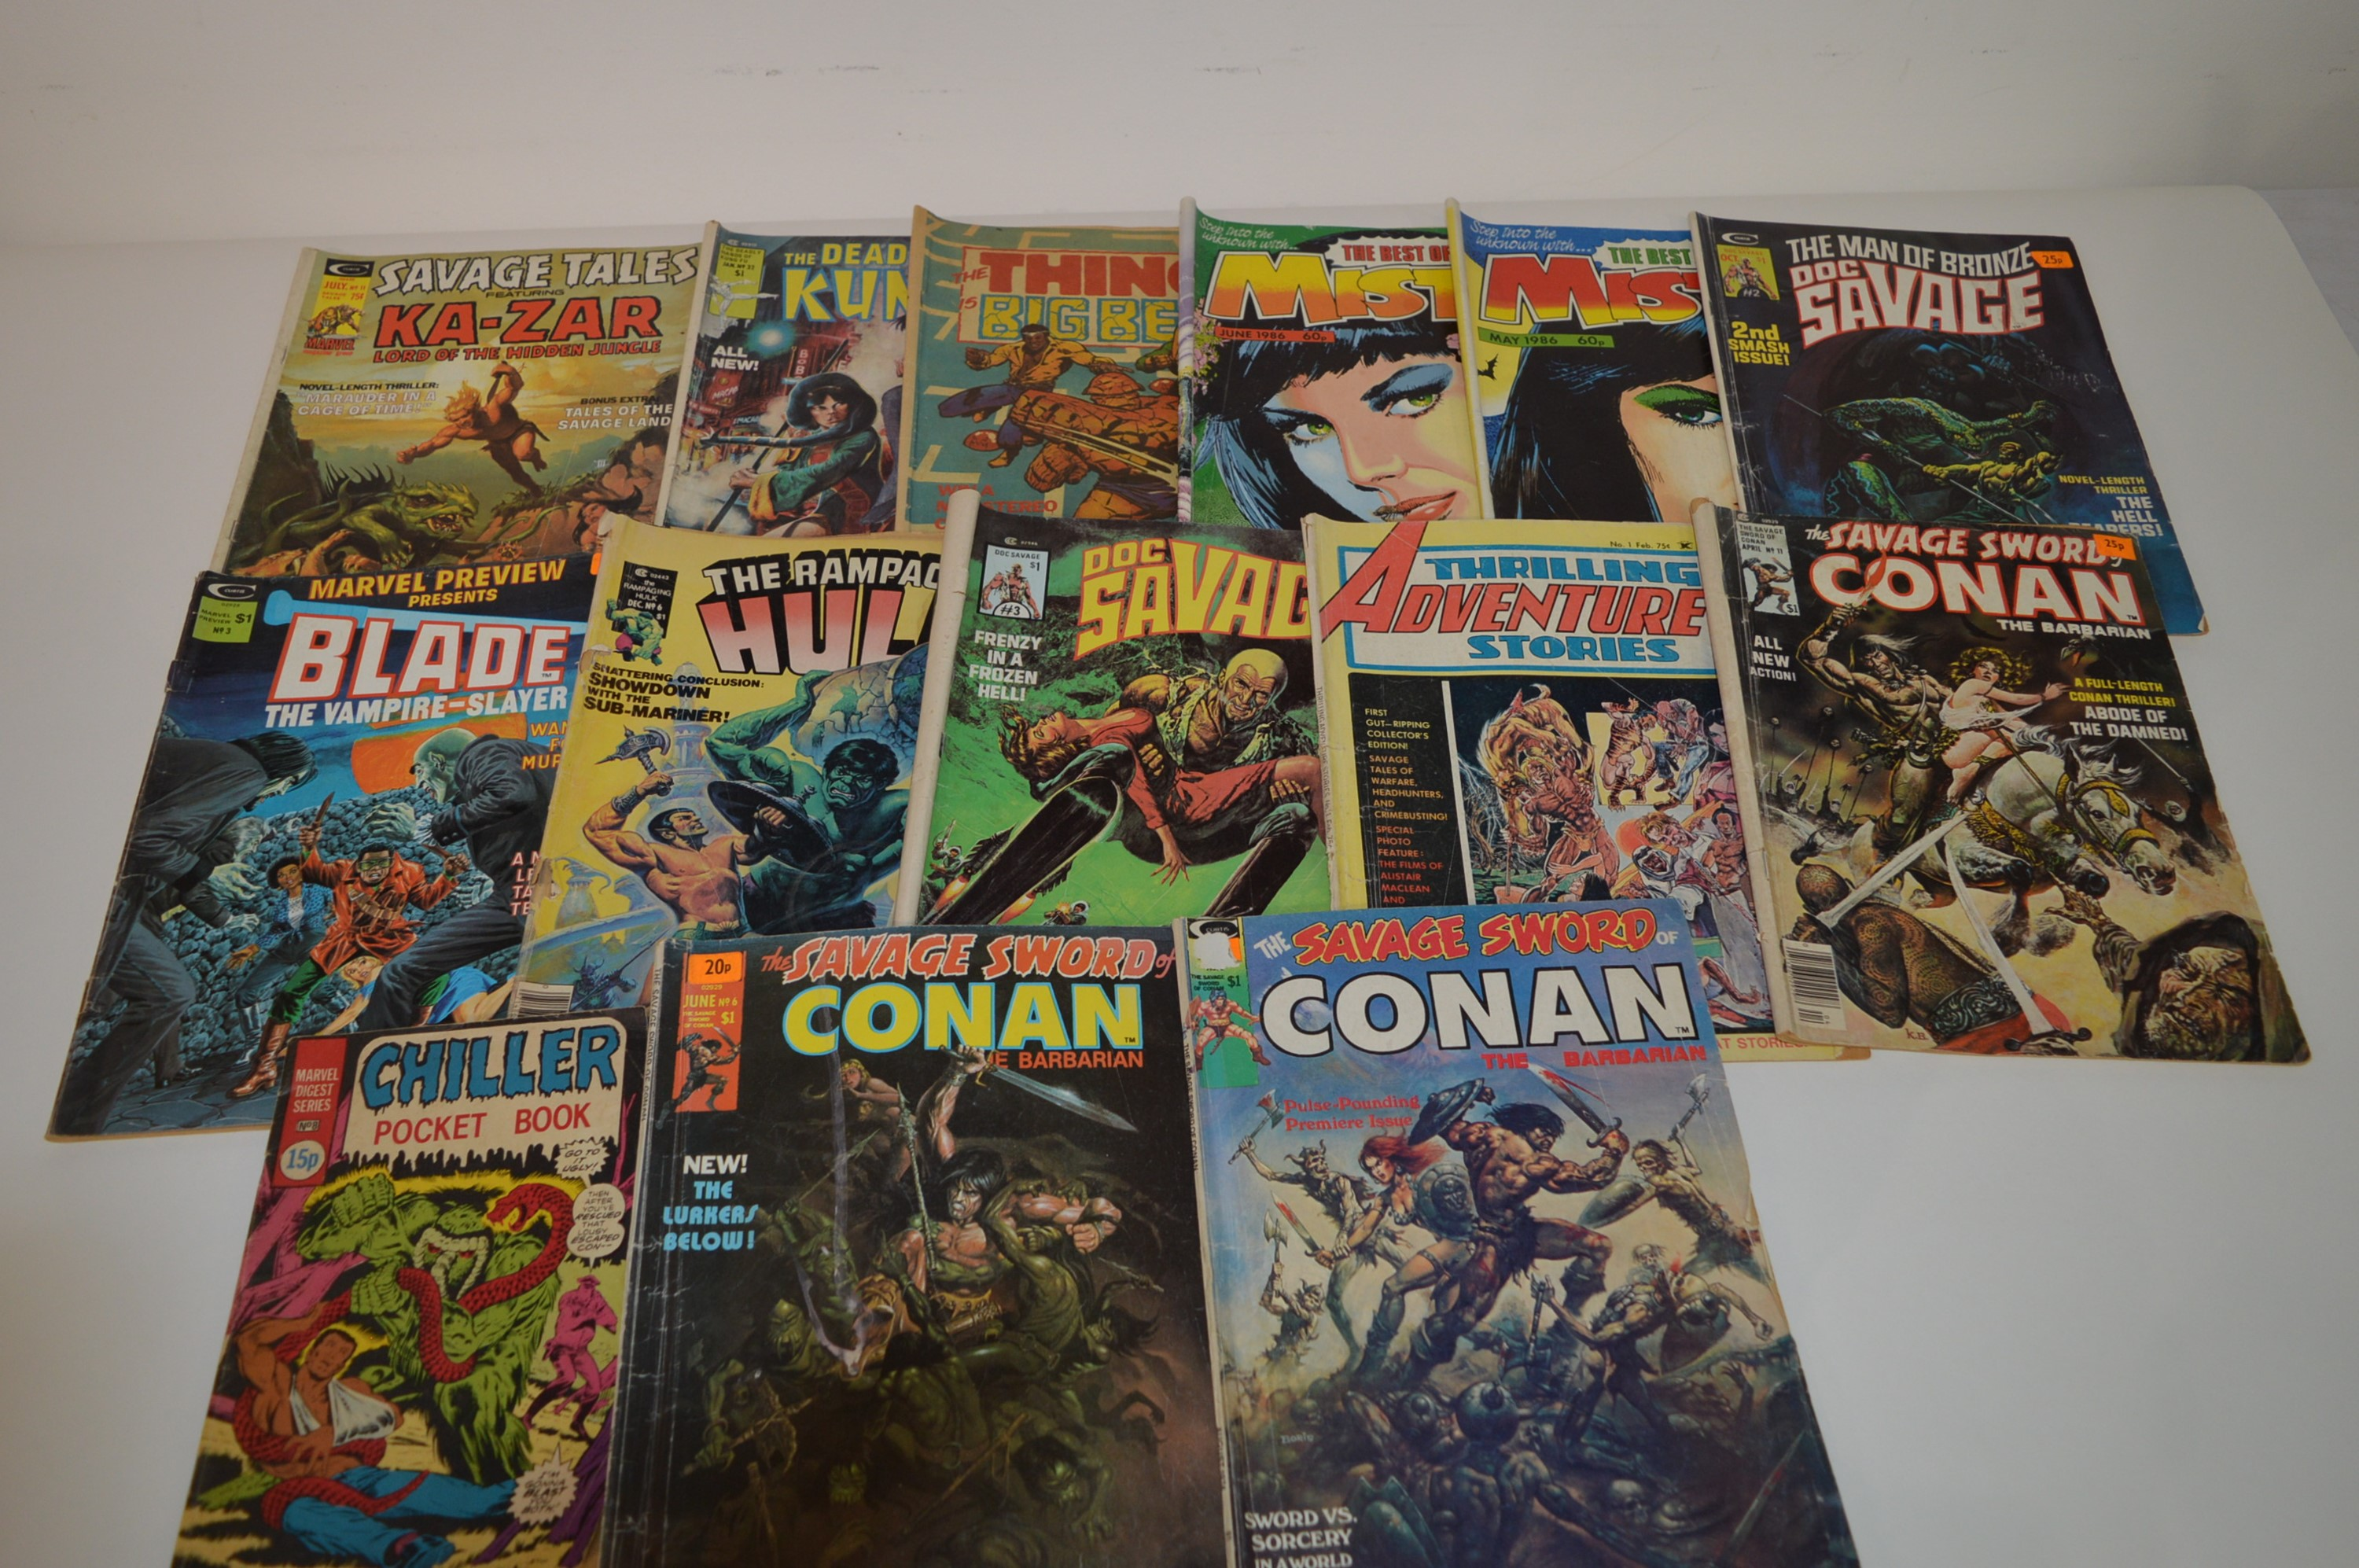 The Savage Sword of Conan; and other comics magazines.